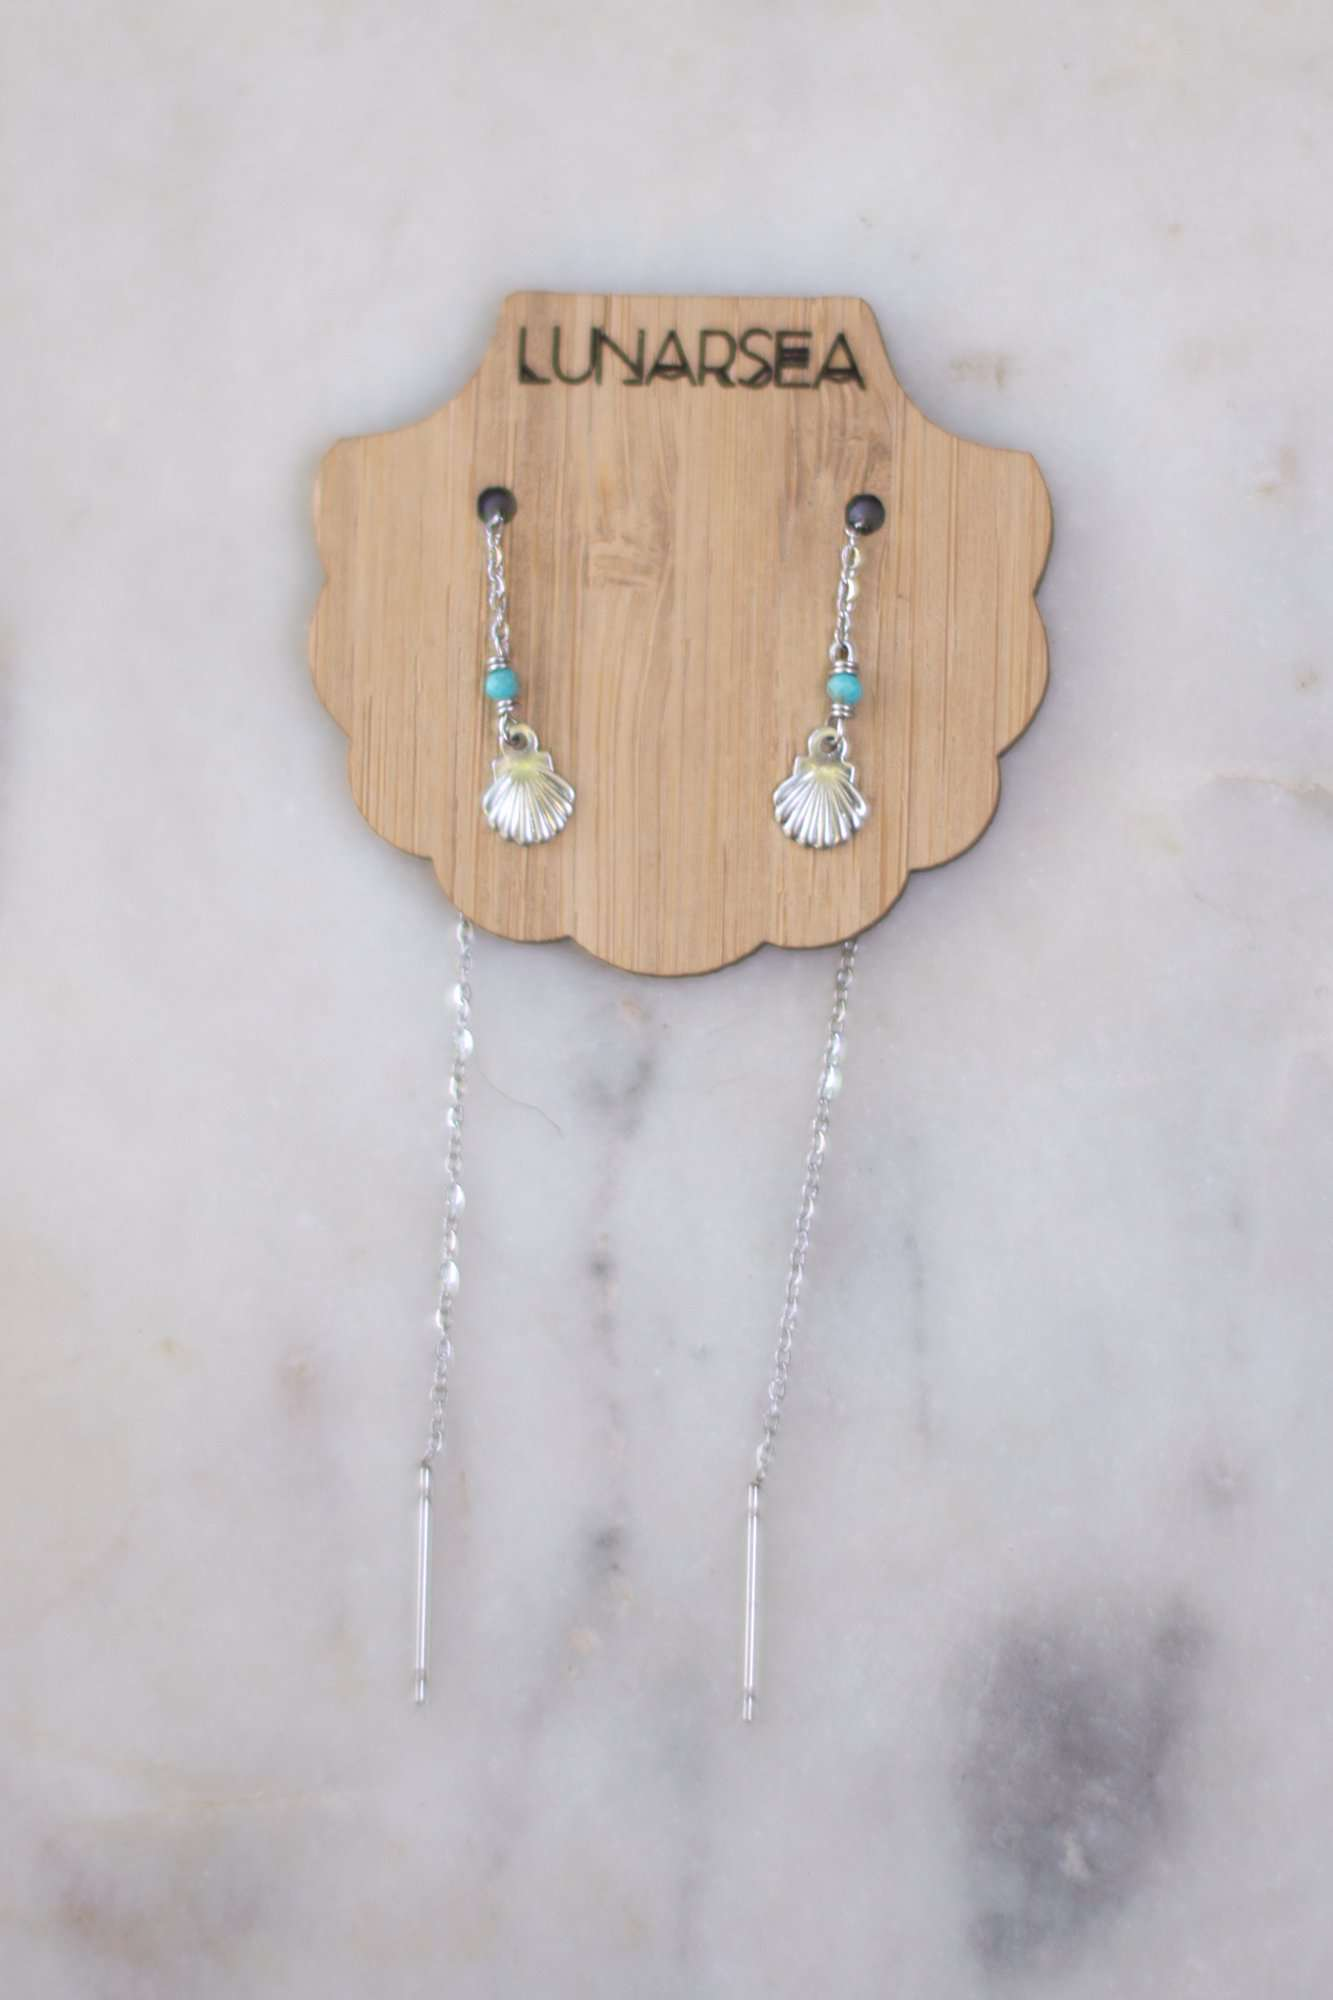 Tiny Shells Ear Threads, Earrings with Turquoise by Lunarsea Designs